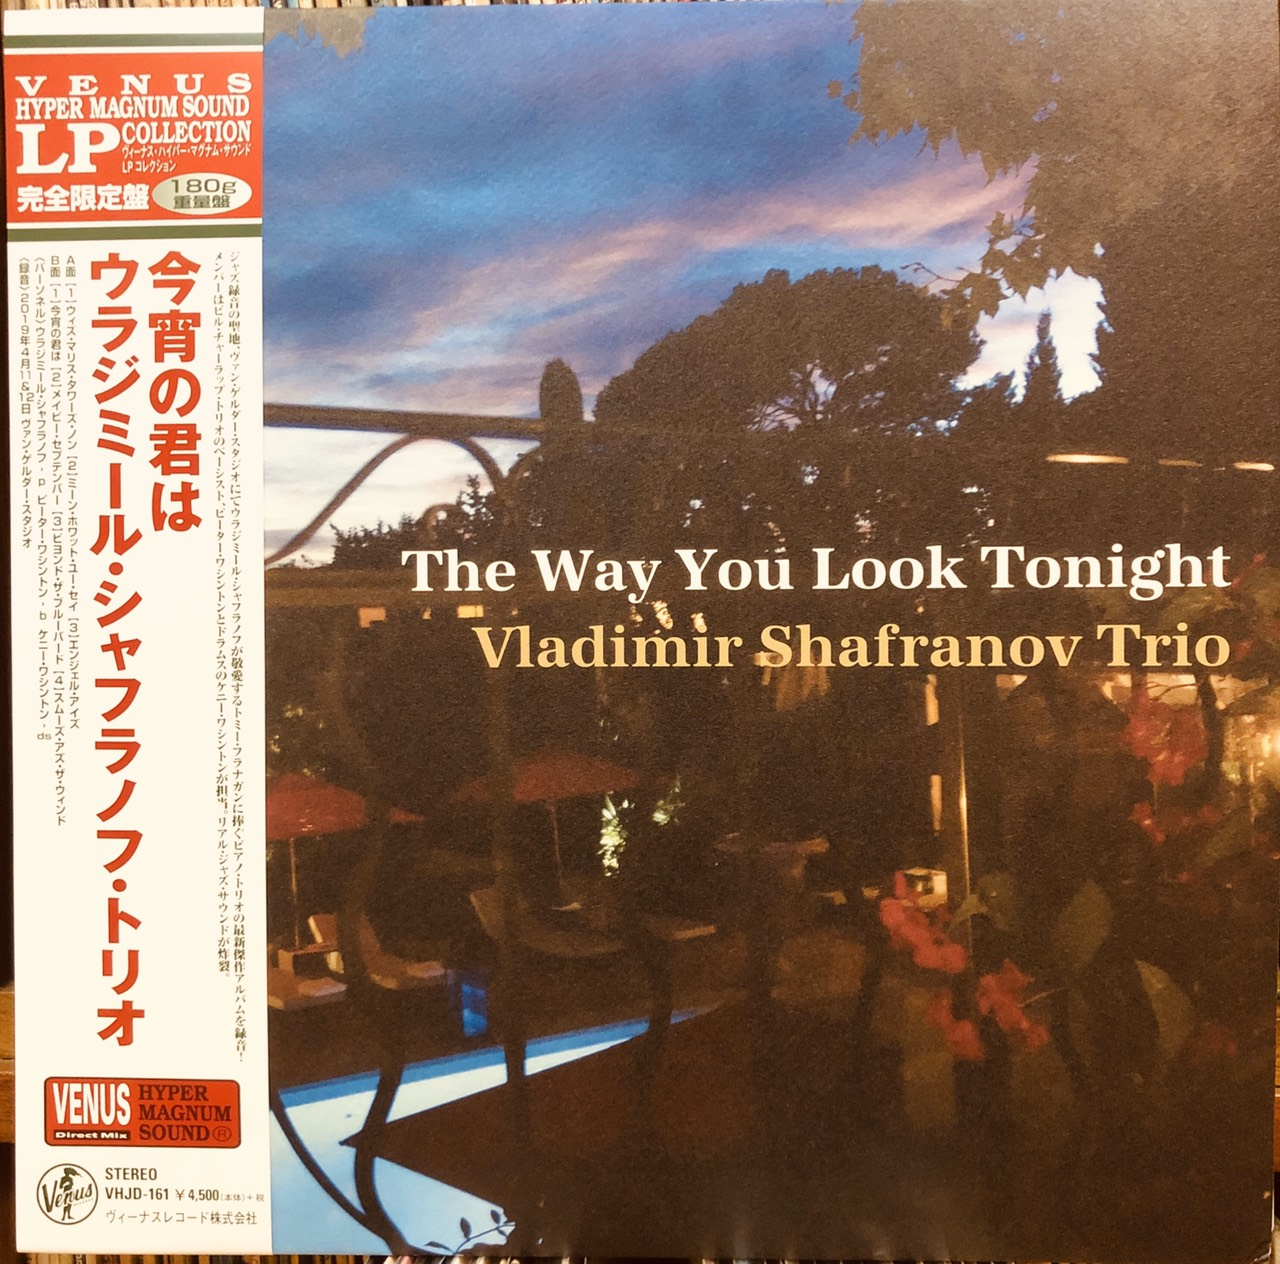 dia-than-lp-the-way-you-look-tonight-vladimir-shafranov-trio